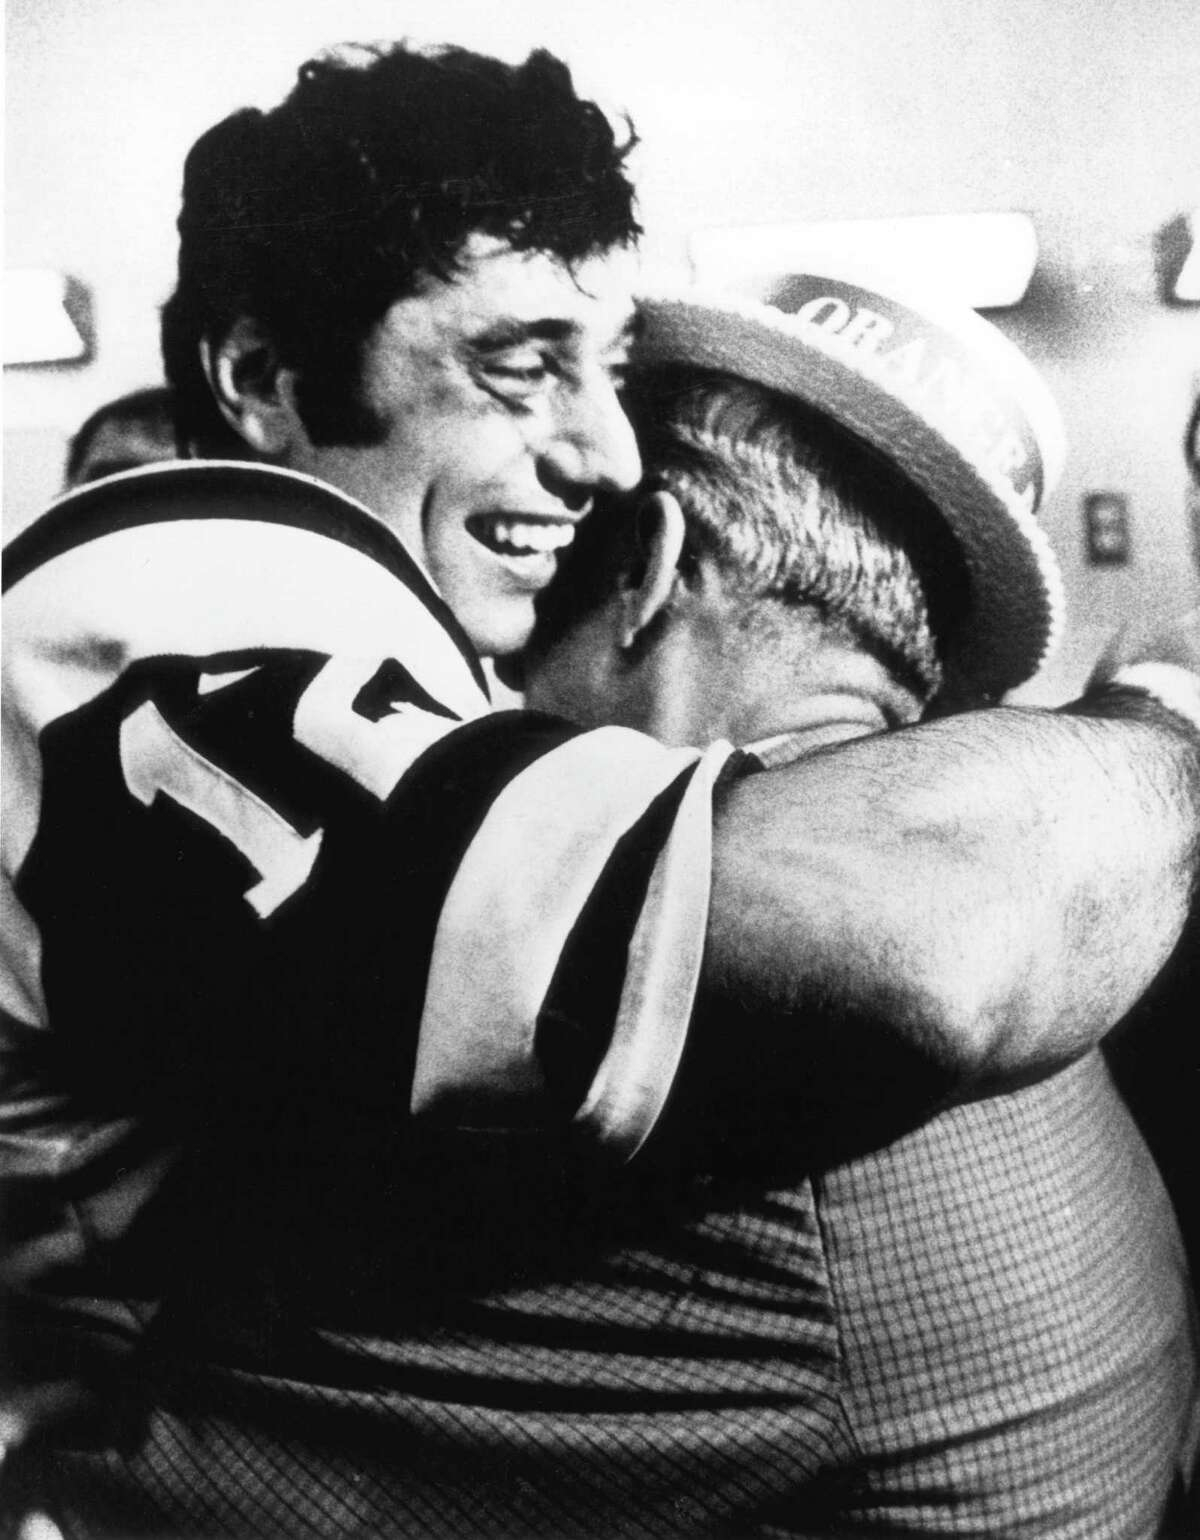 New York Jets Hall o Fame quarterback Joe Namath hugs his father after a 16-7 win over the Baltimore Colts in Super Bowl III on January 12, 1969 at Orange Bowl. Natmath was voted the game's MVP after completing 17 of 28 passes for 206-yards. (Photo by Fred Roe/Getty Images)